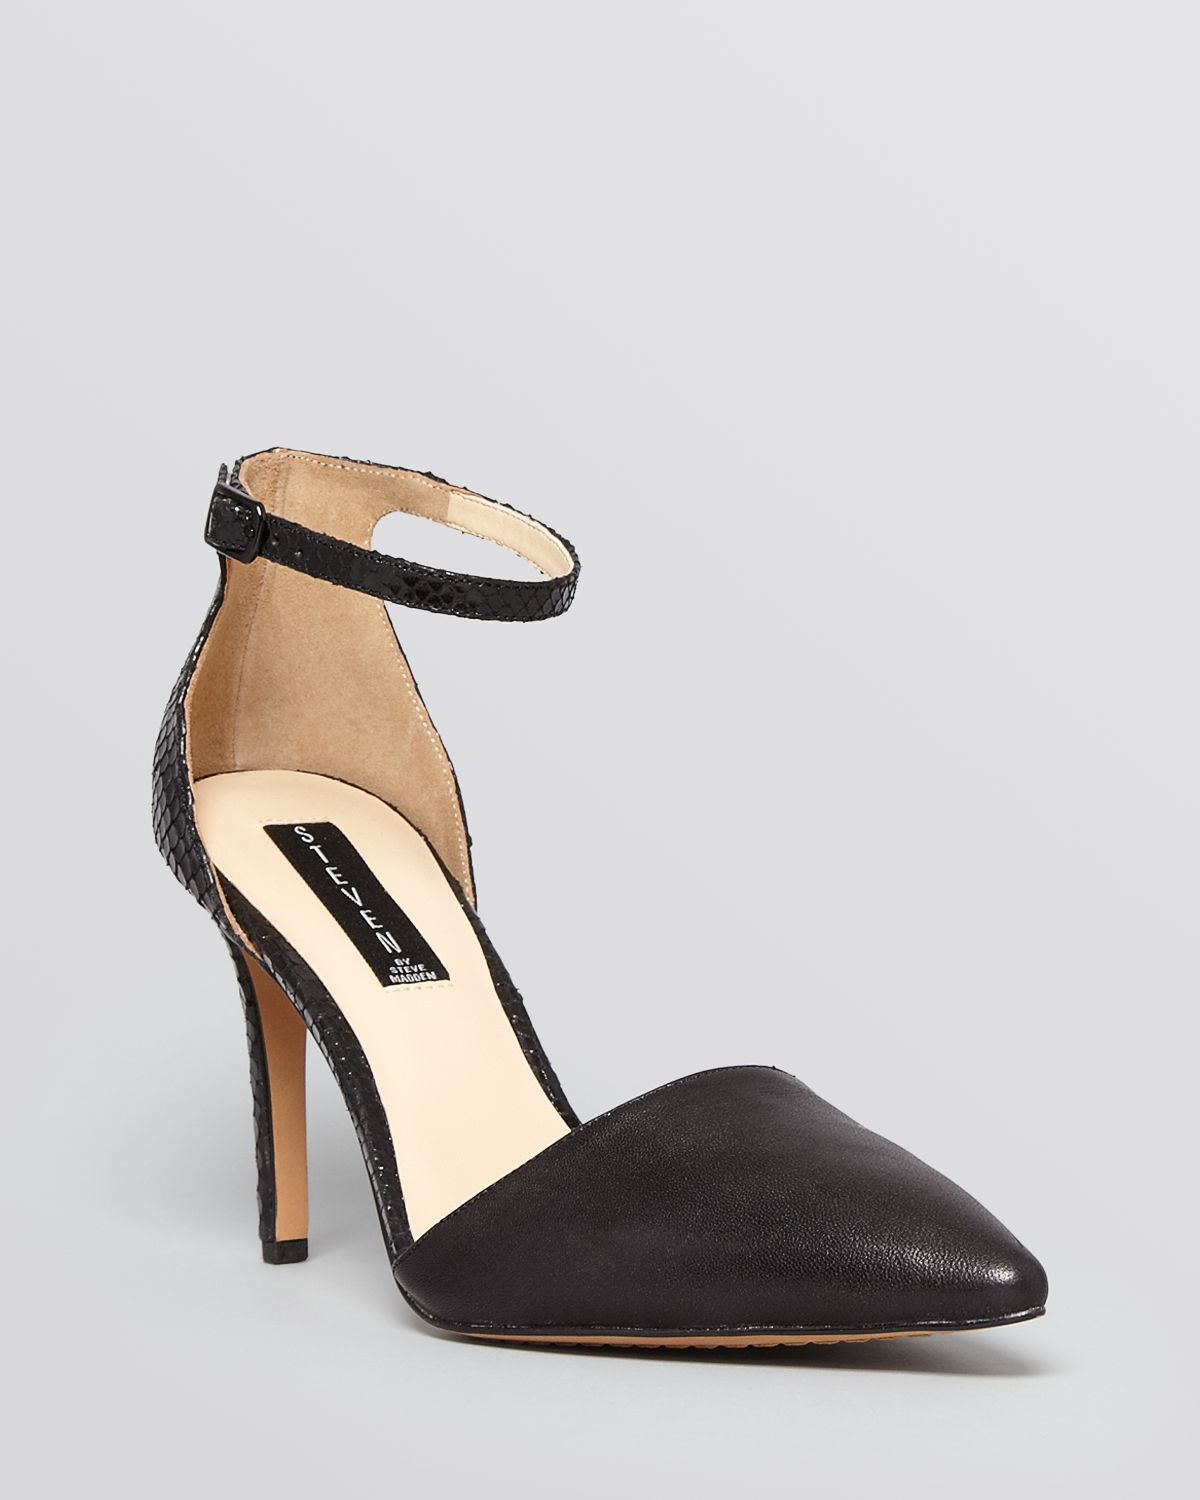 Lyst - Steven by Steve Madden Pointed Toe Ankle Strap D orsay Pumps ...